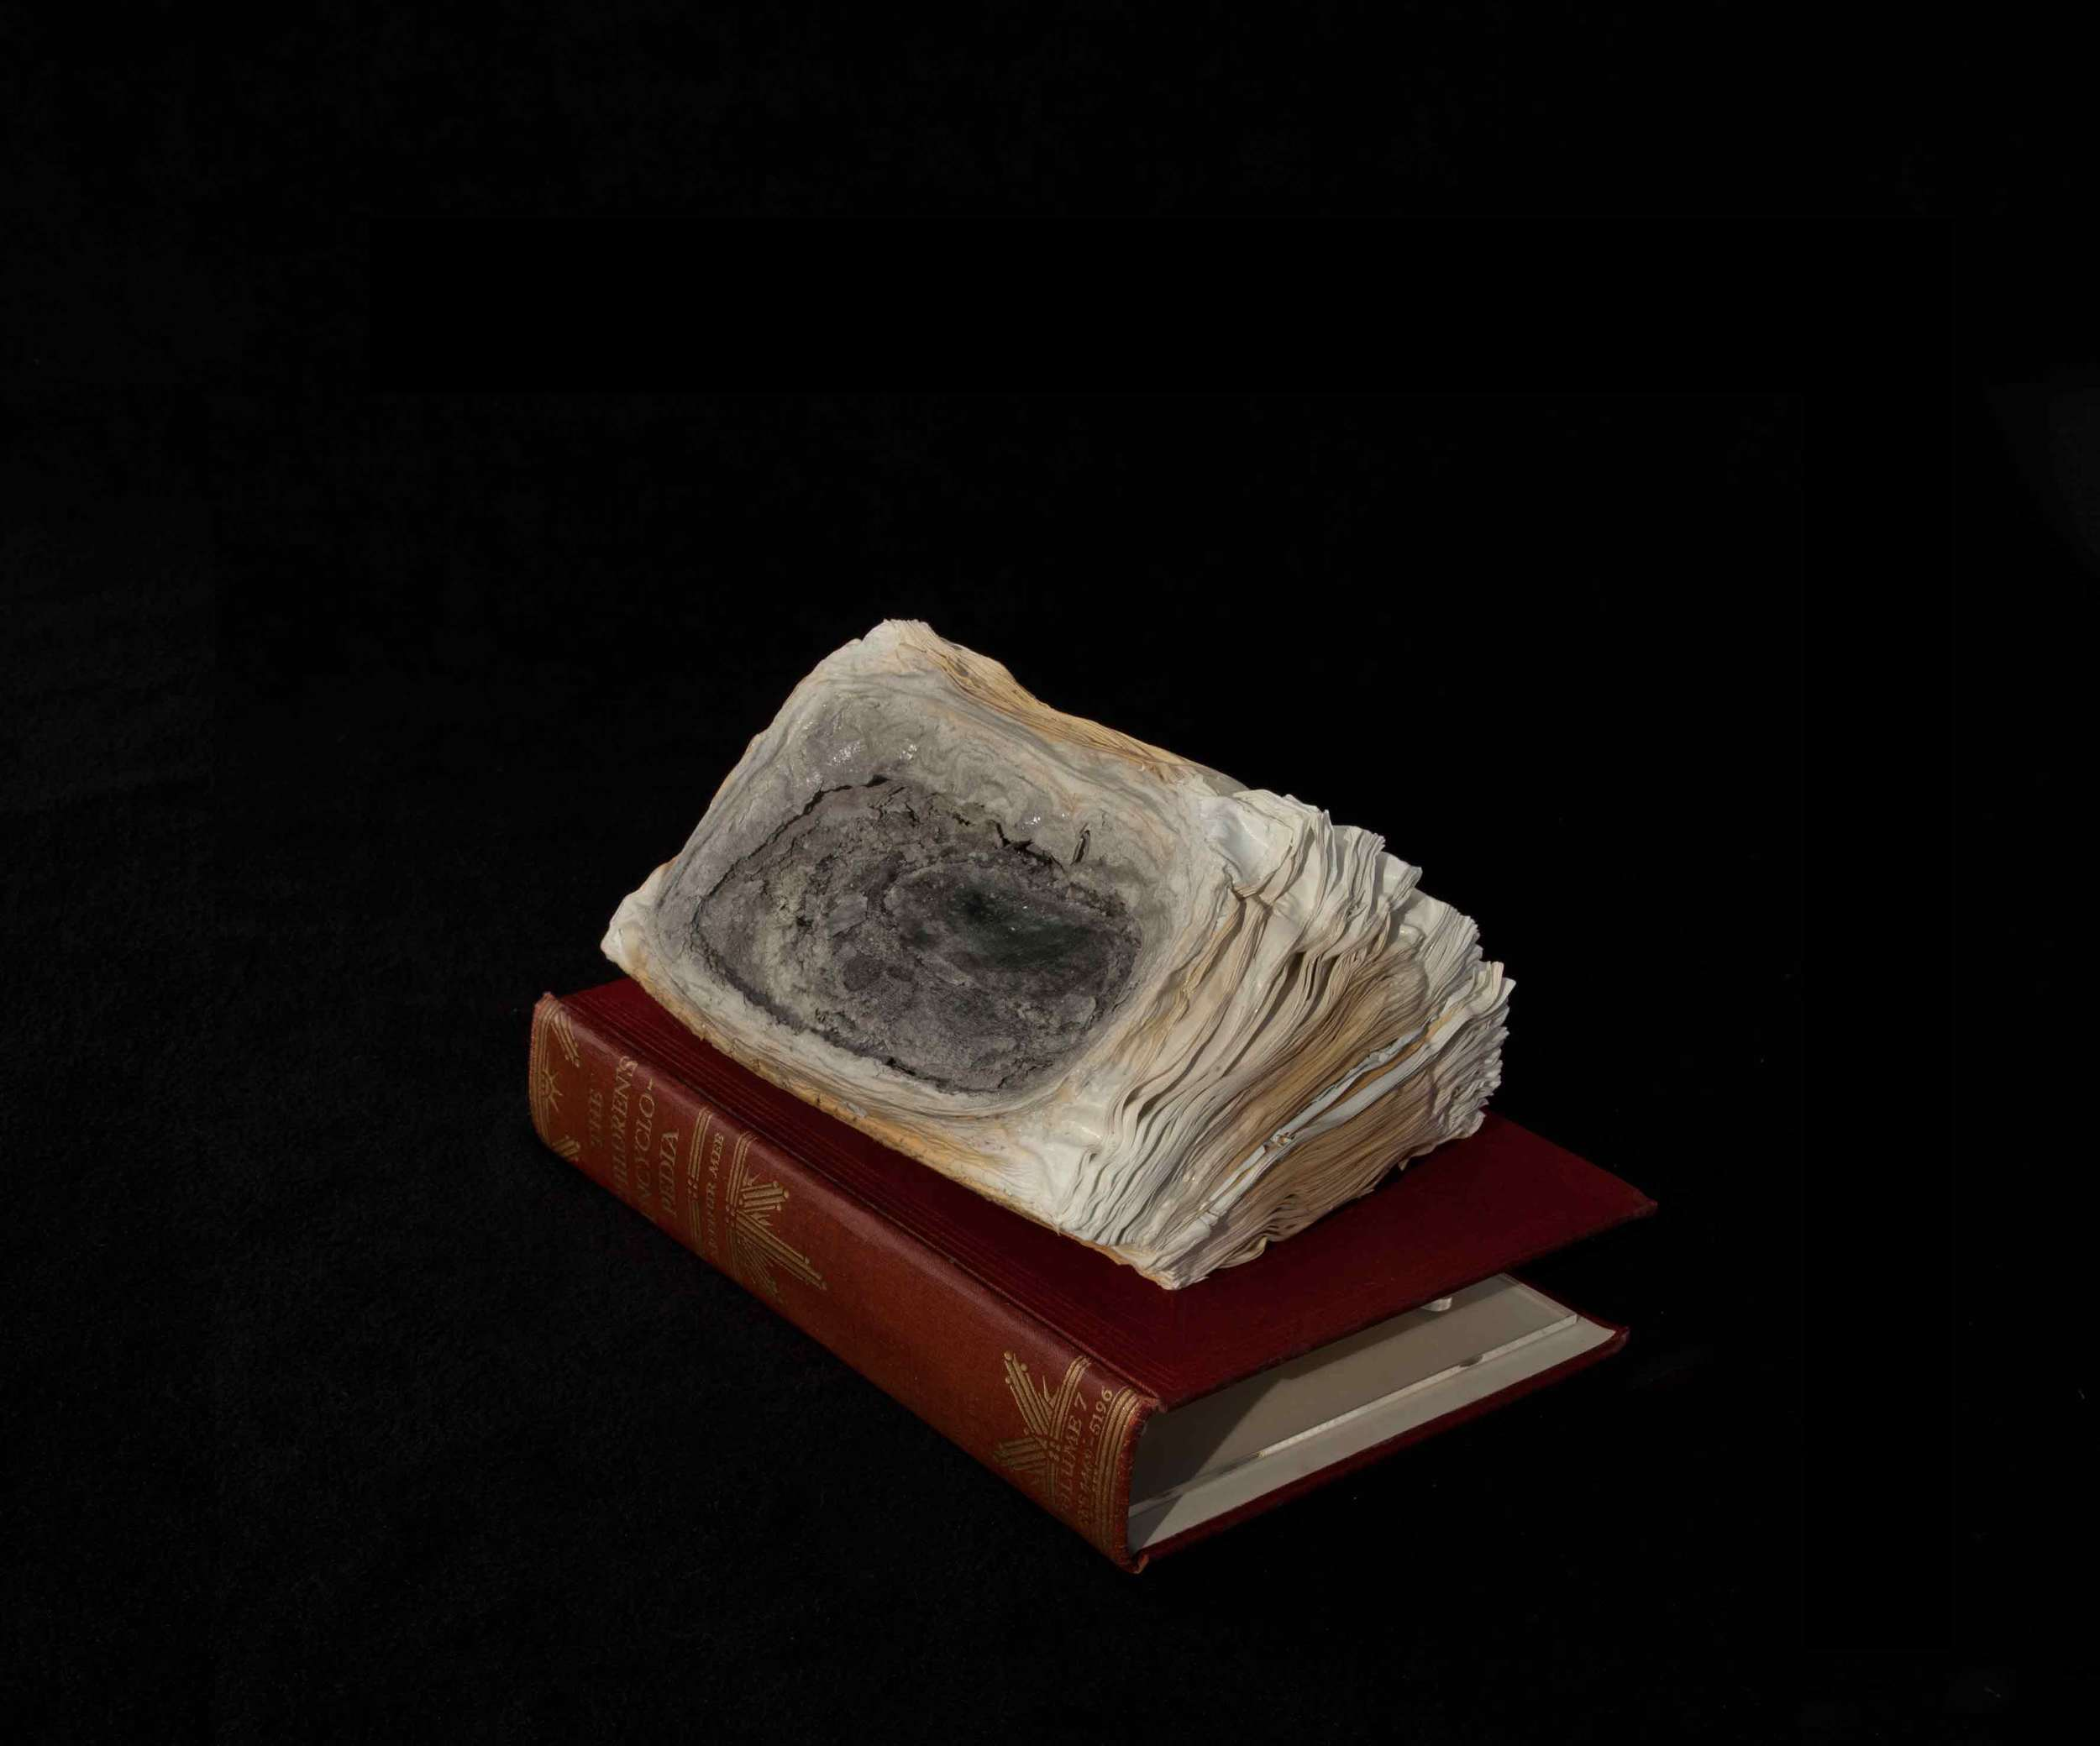 CYRUS TANG   Children's Encyclopaedia Vol 7  2016 Cremated book ashes, book cover and acrylic case 29 x 21 x 21 cm